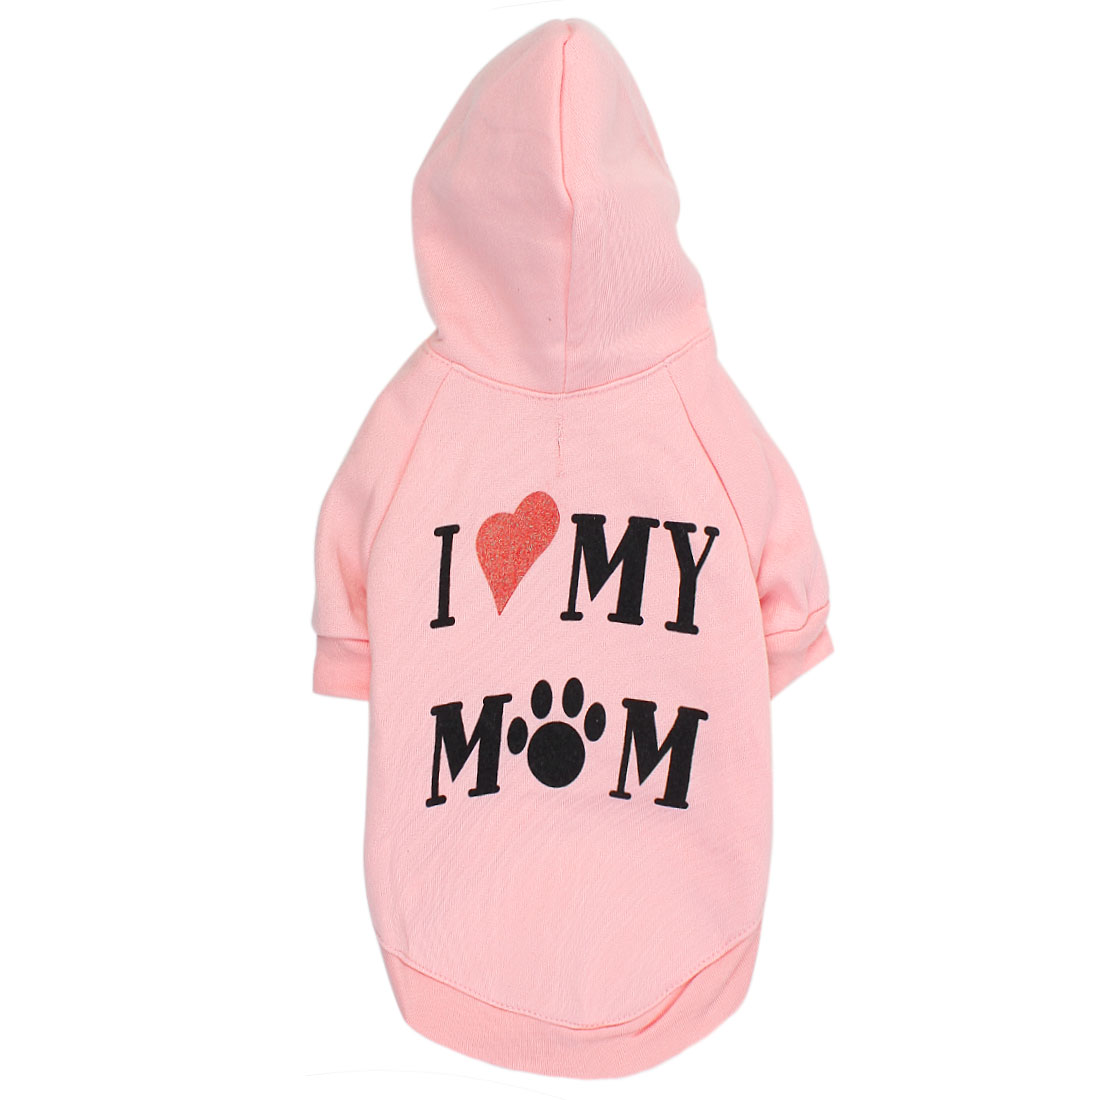 I LOVE MOM Pet Dog Puppy Clothes Hoodie Warm Coat Apparel Costume Pink Size M